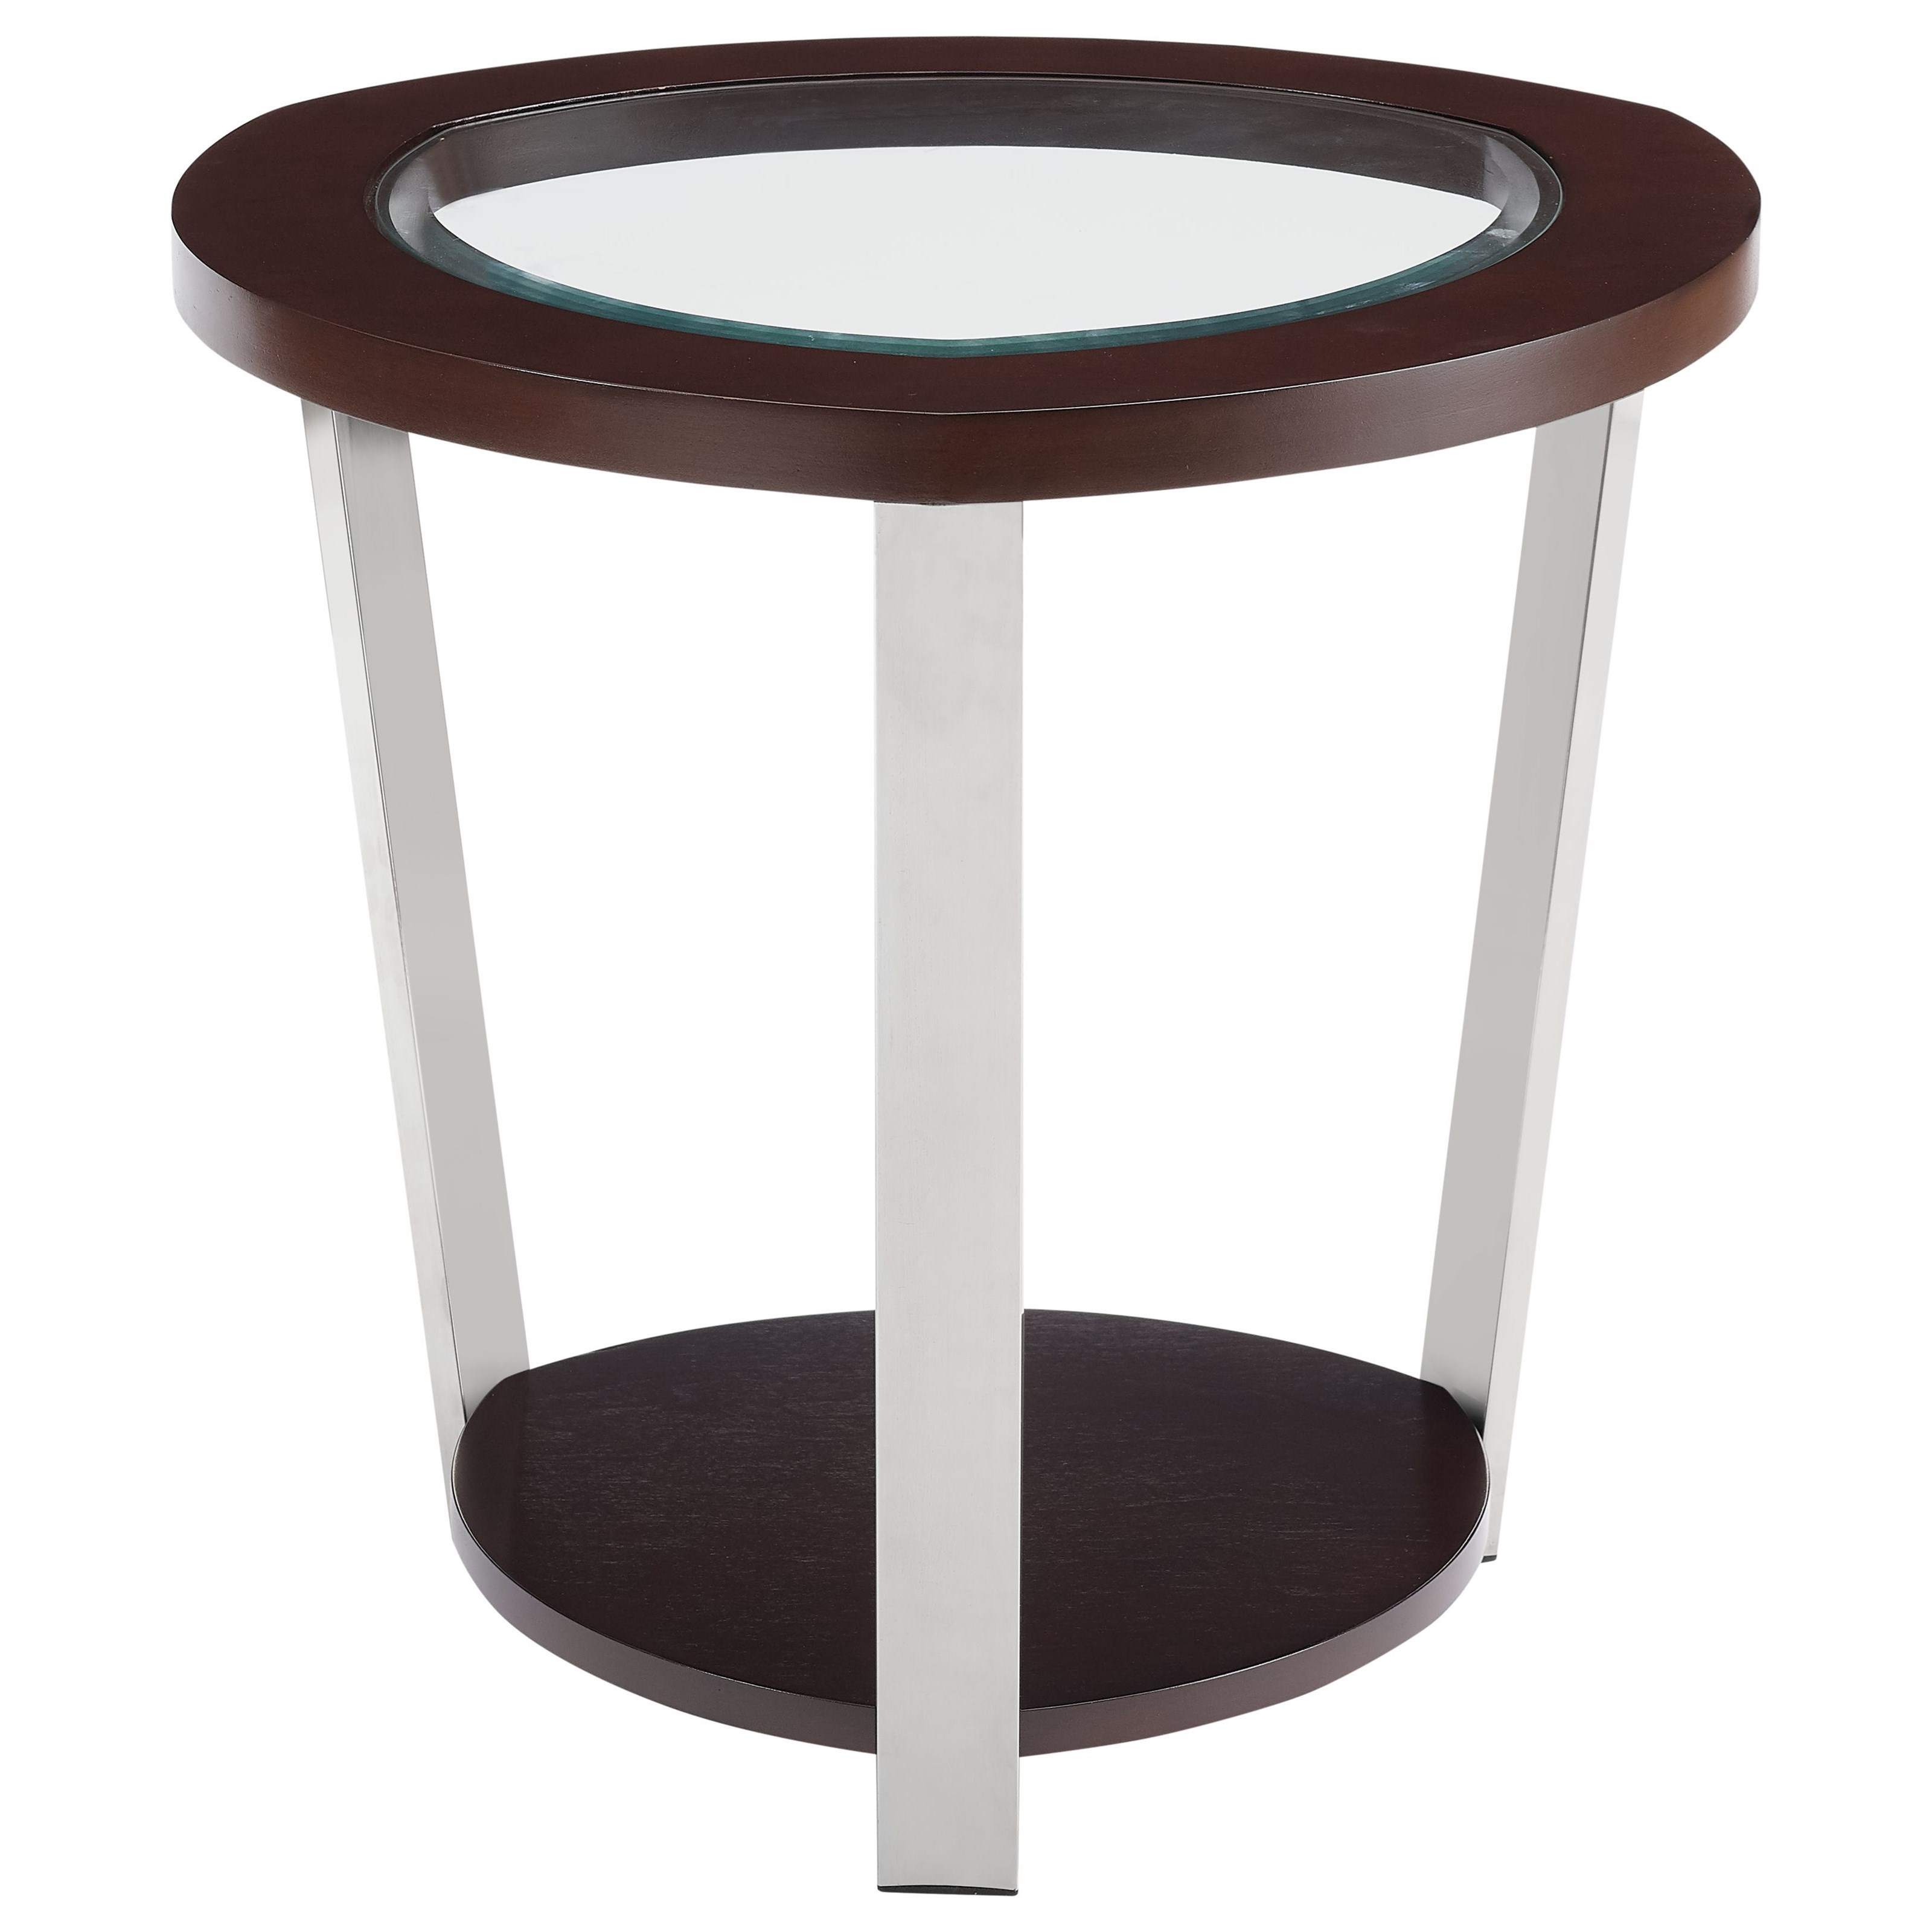 Duncan End Table by Steve Silver at Walker's Furniture